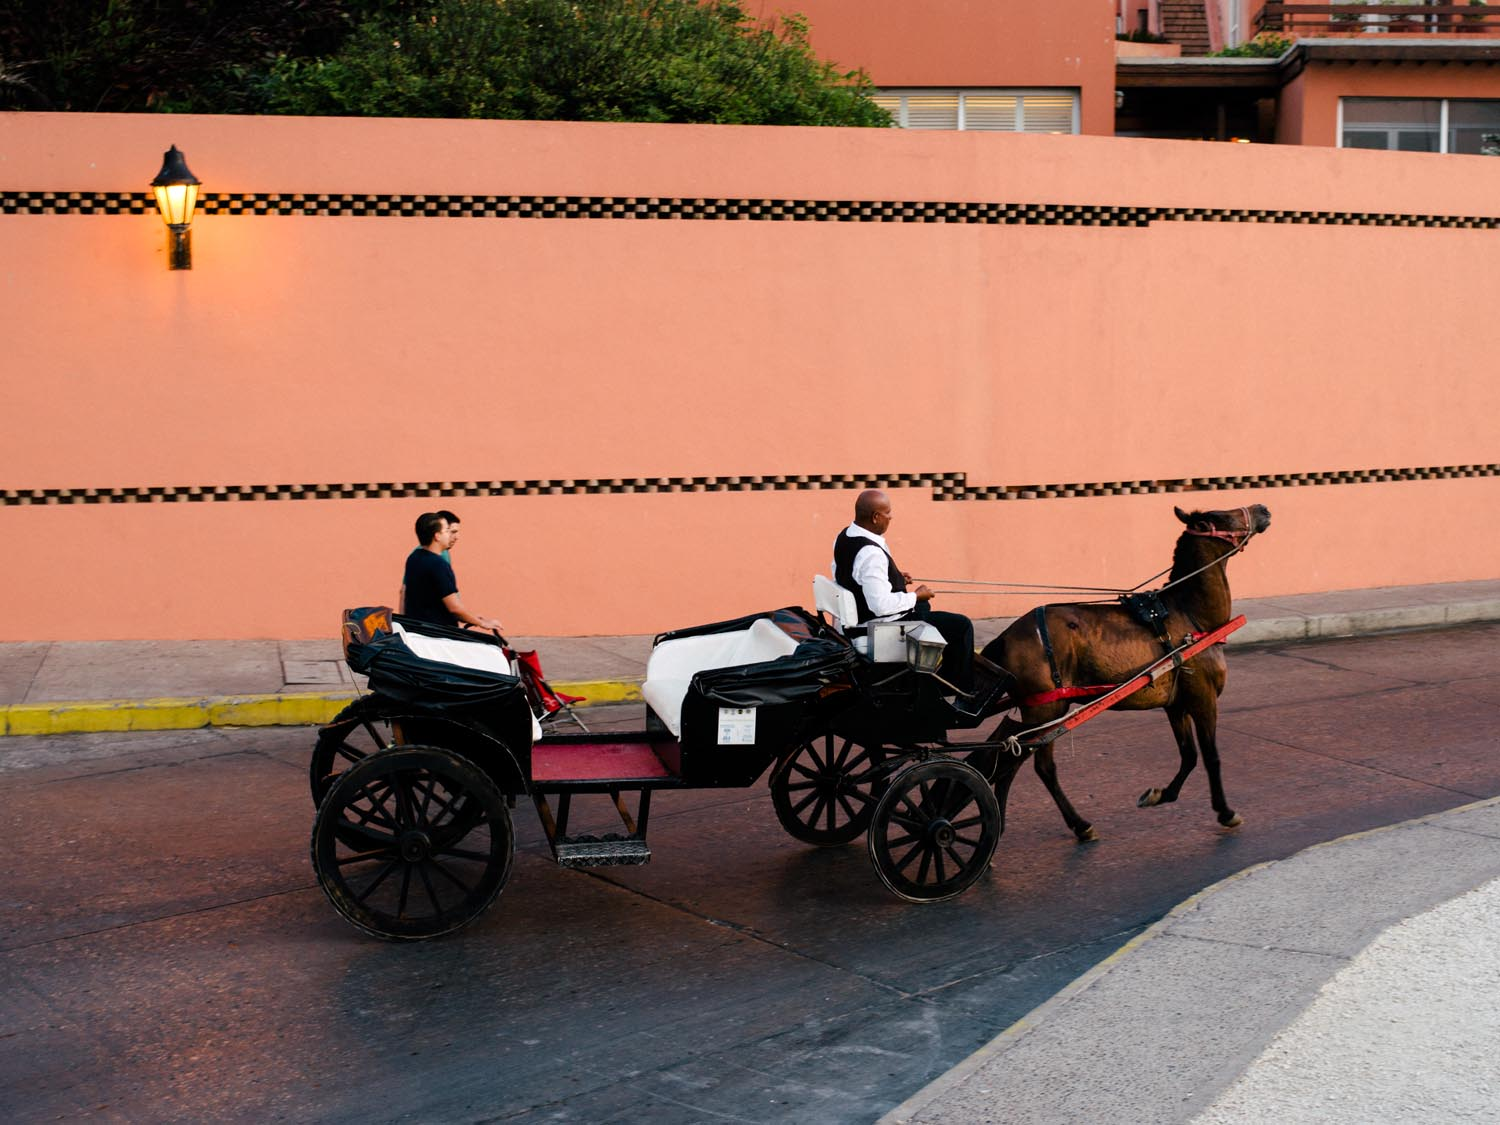 cartagena-colombia-photography-horse-2.jpg